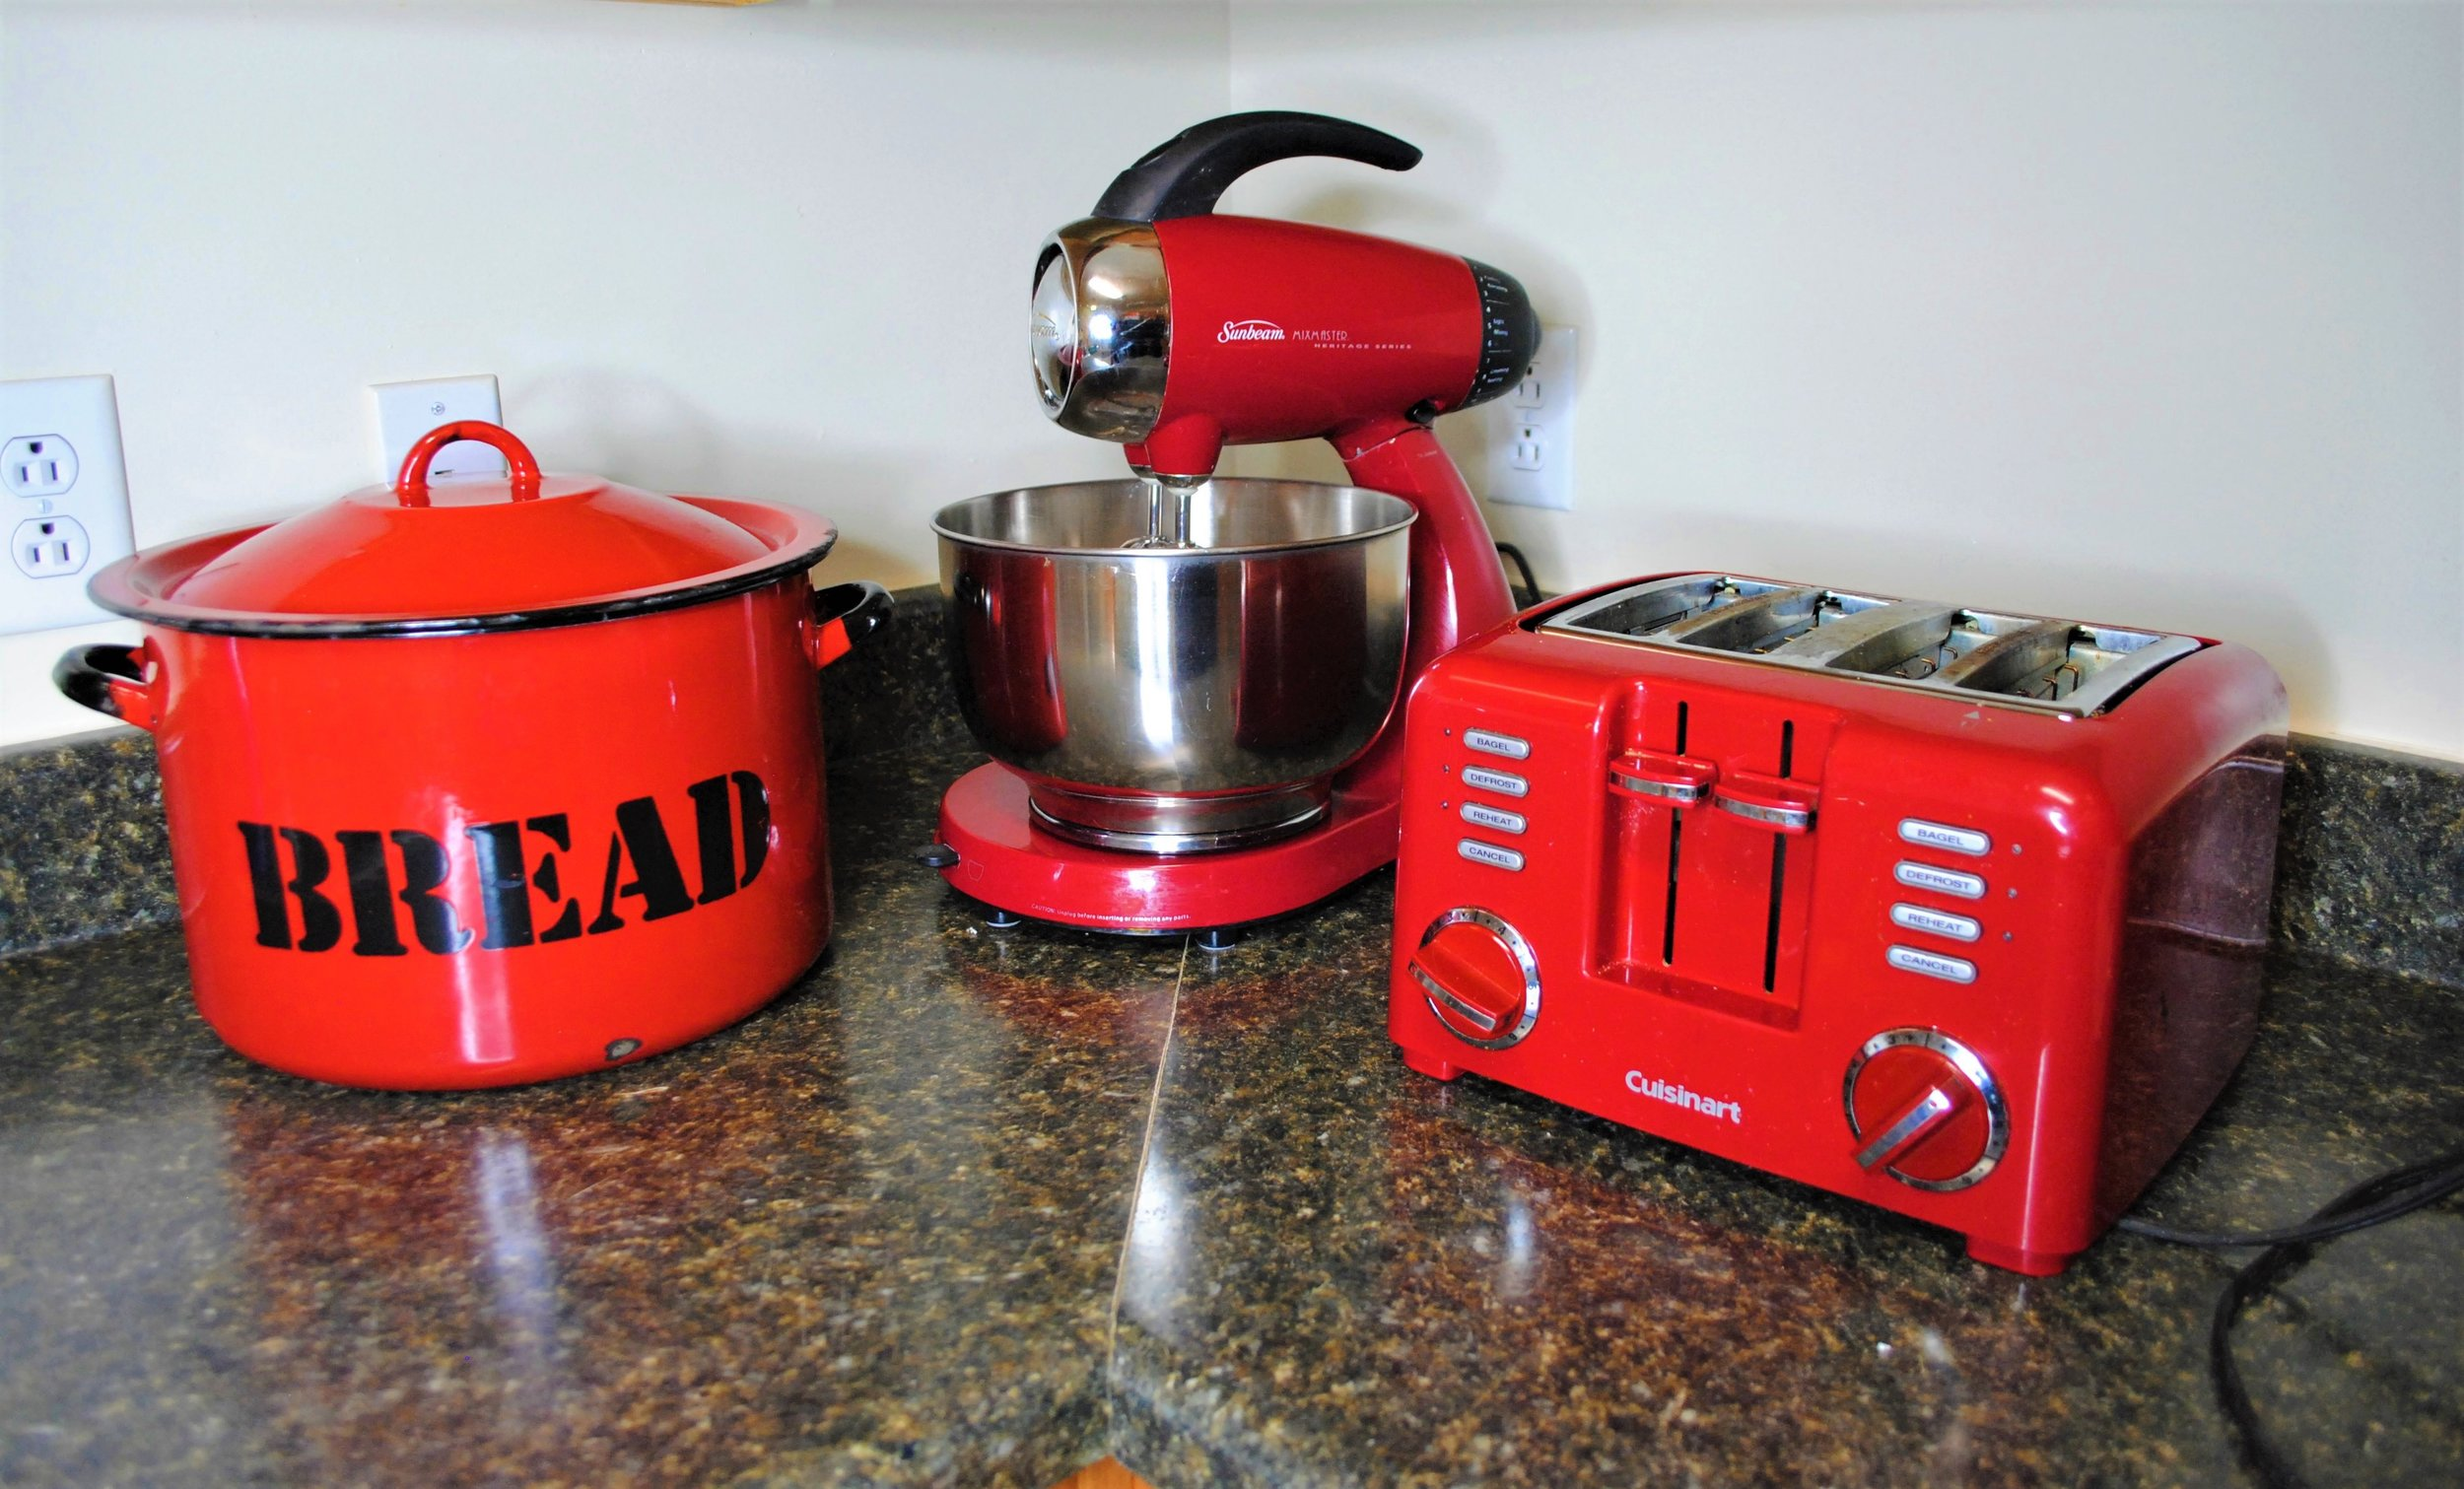 My wonderful parents gave me these kitchen appliances after they moved. While I love each of the pieces, I knew the cherry red color would clash with the rest of my apartment. But have no fear, spray paint Tess is here!